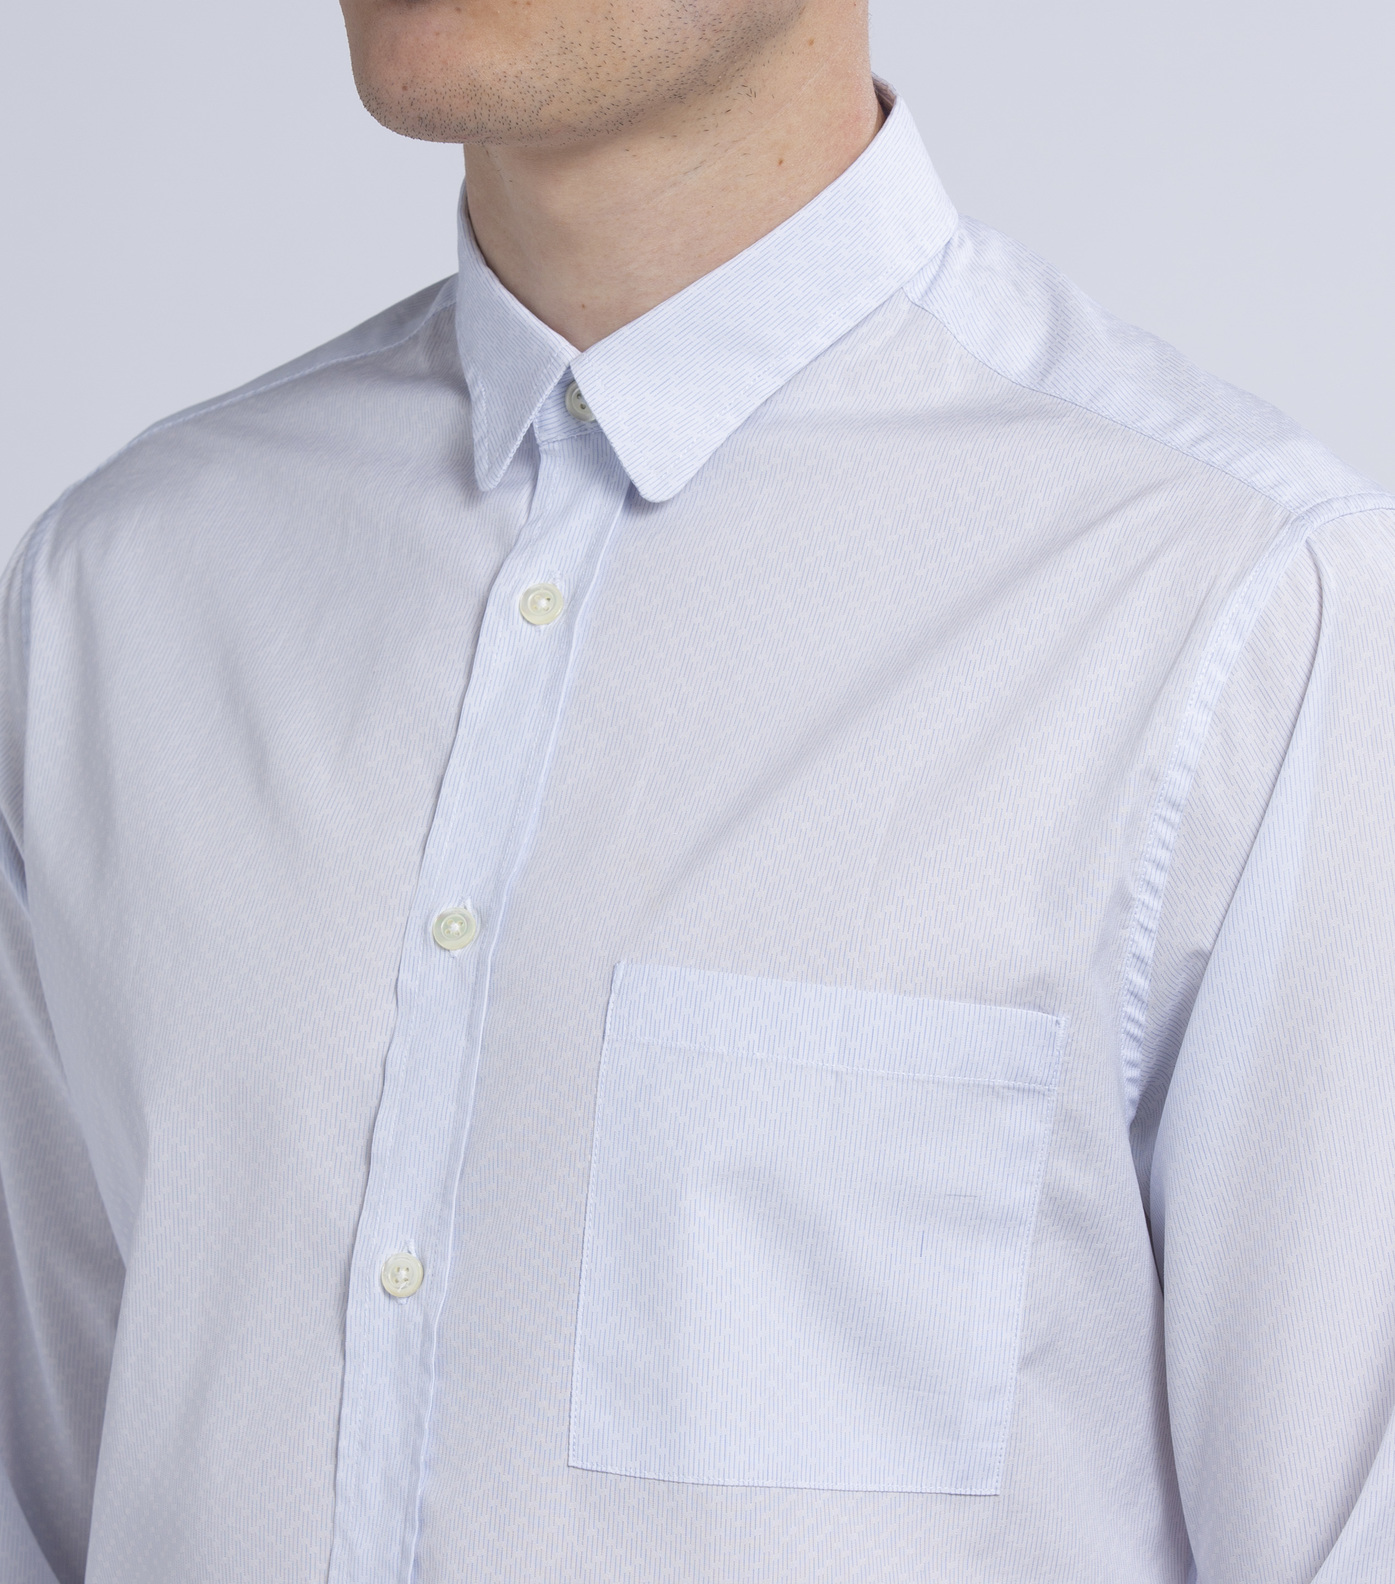 SHIRT ROSSEL - Thin stripes